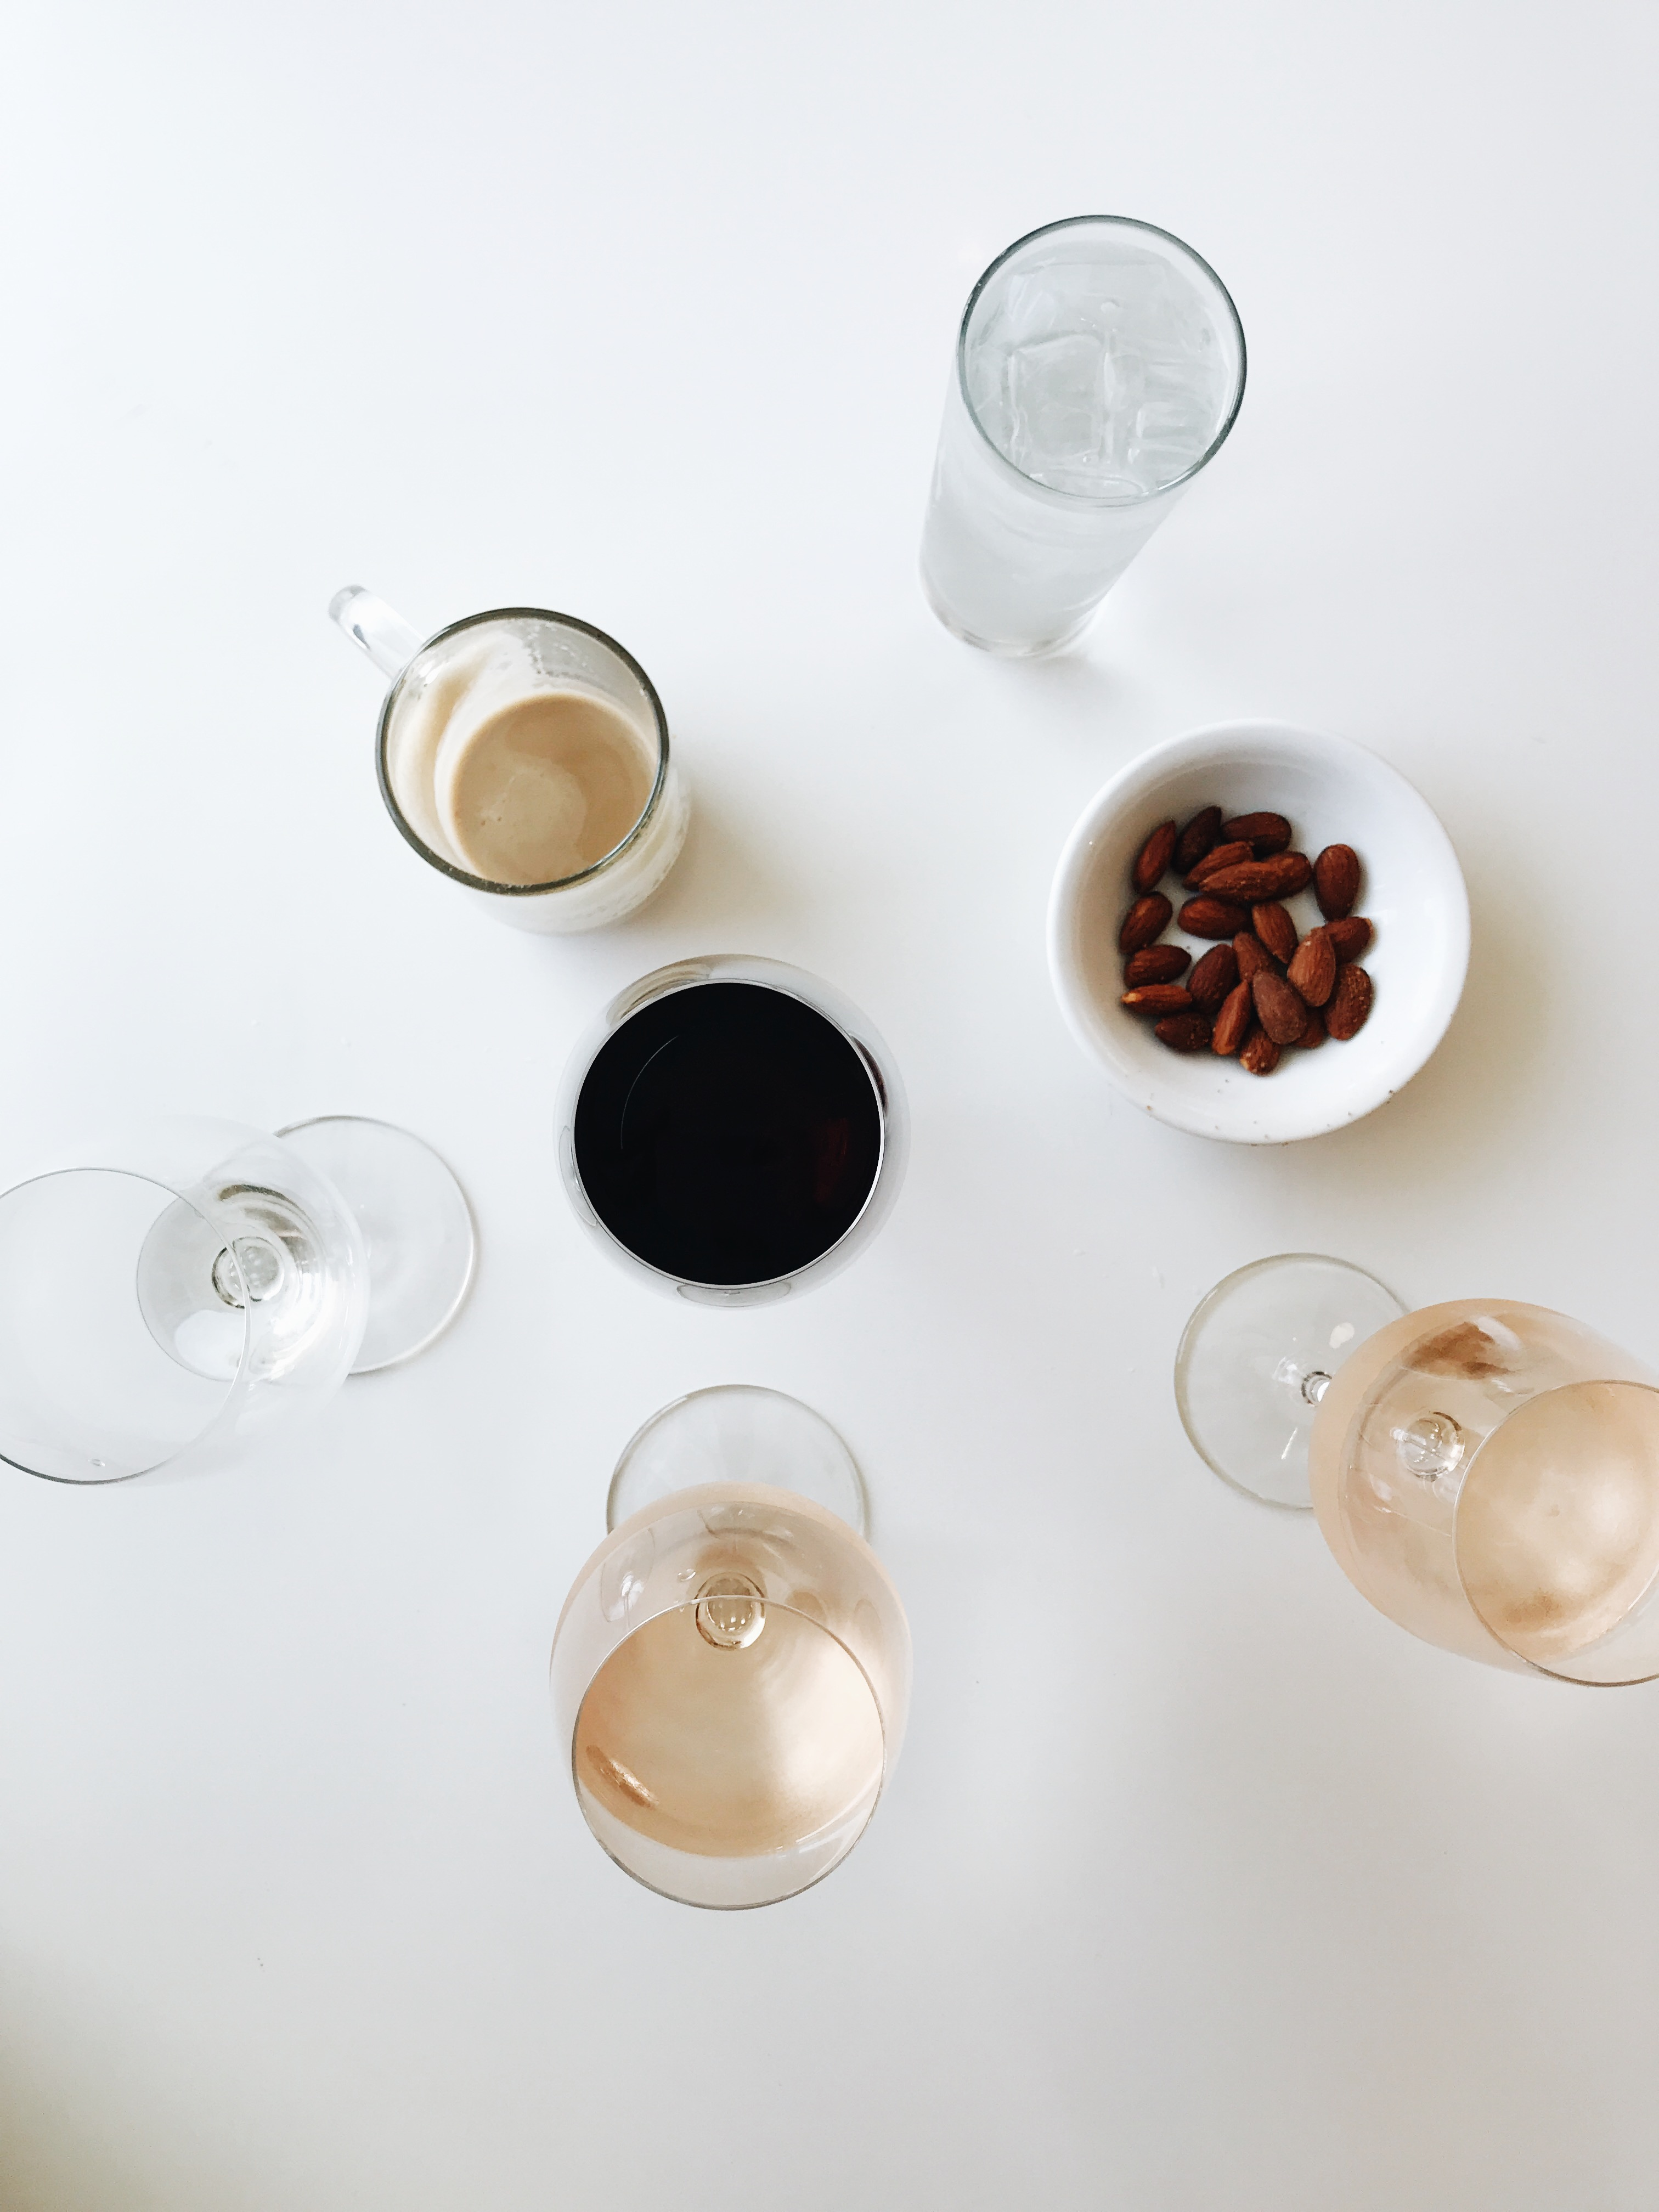 rosé, coffee and nuts